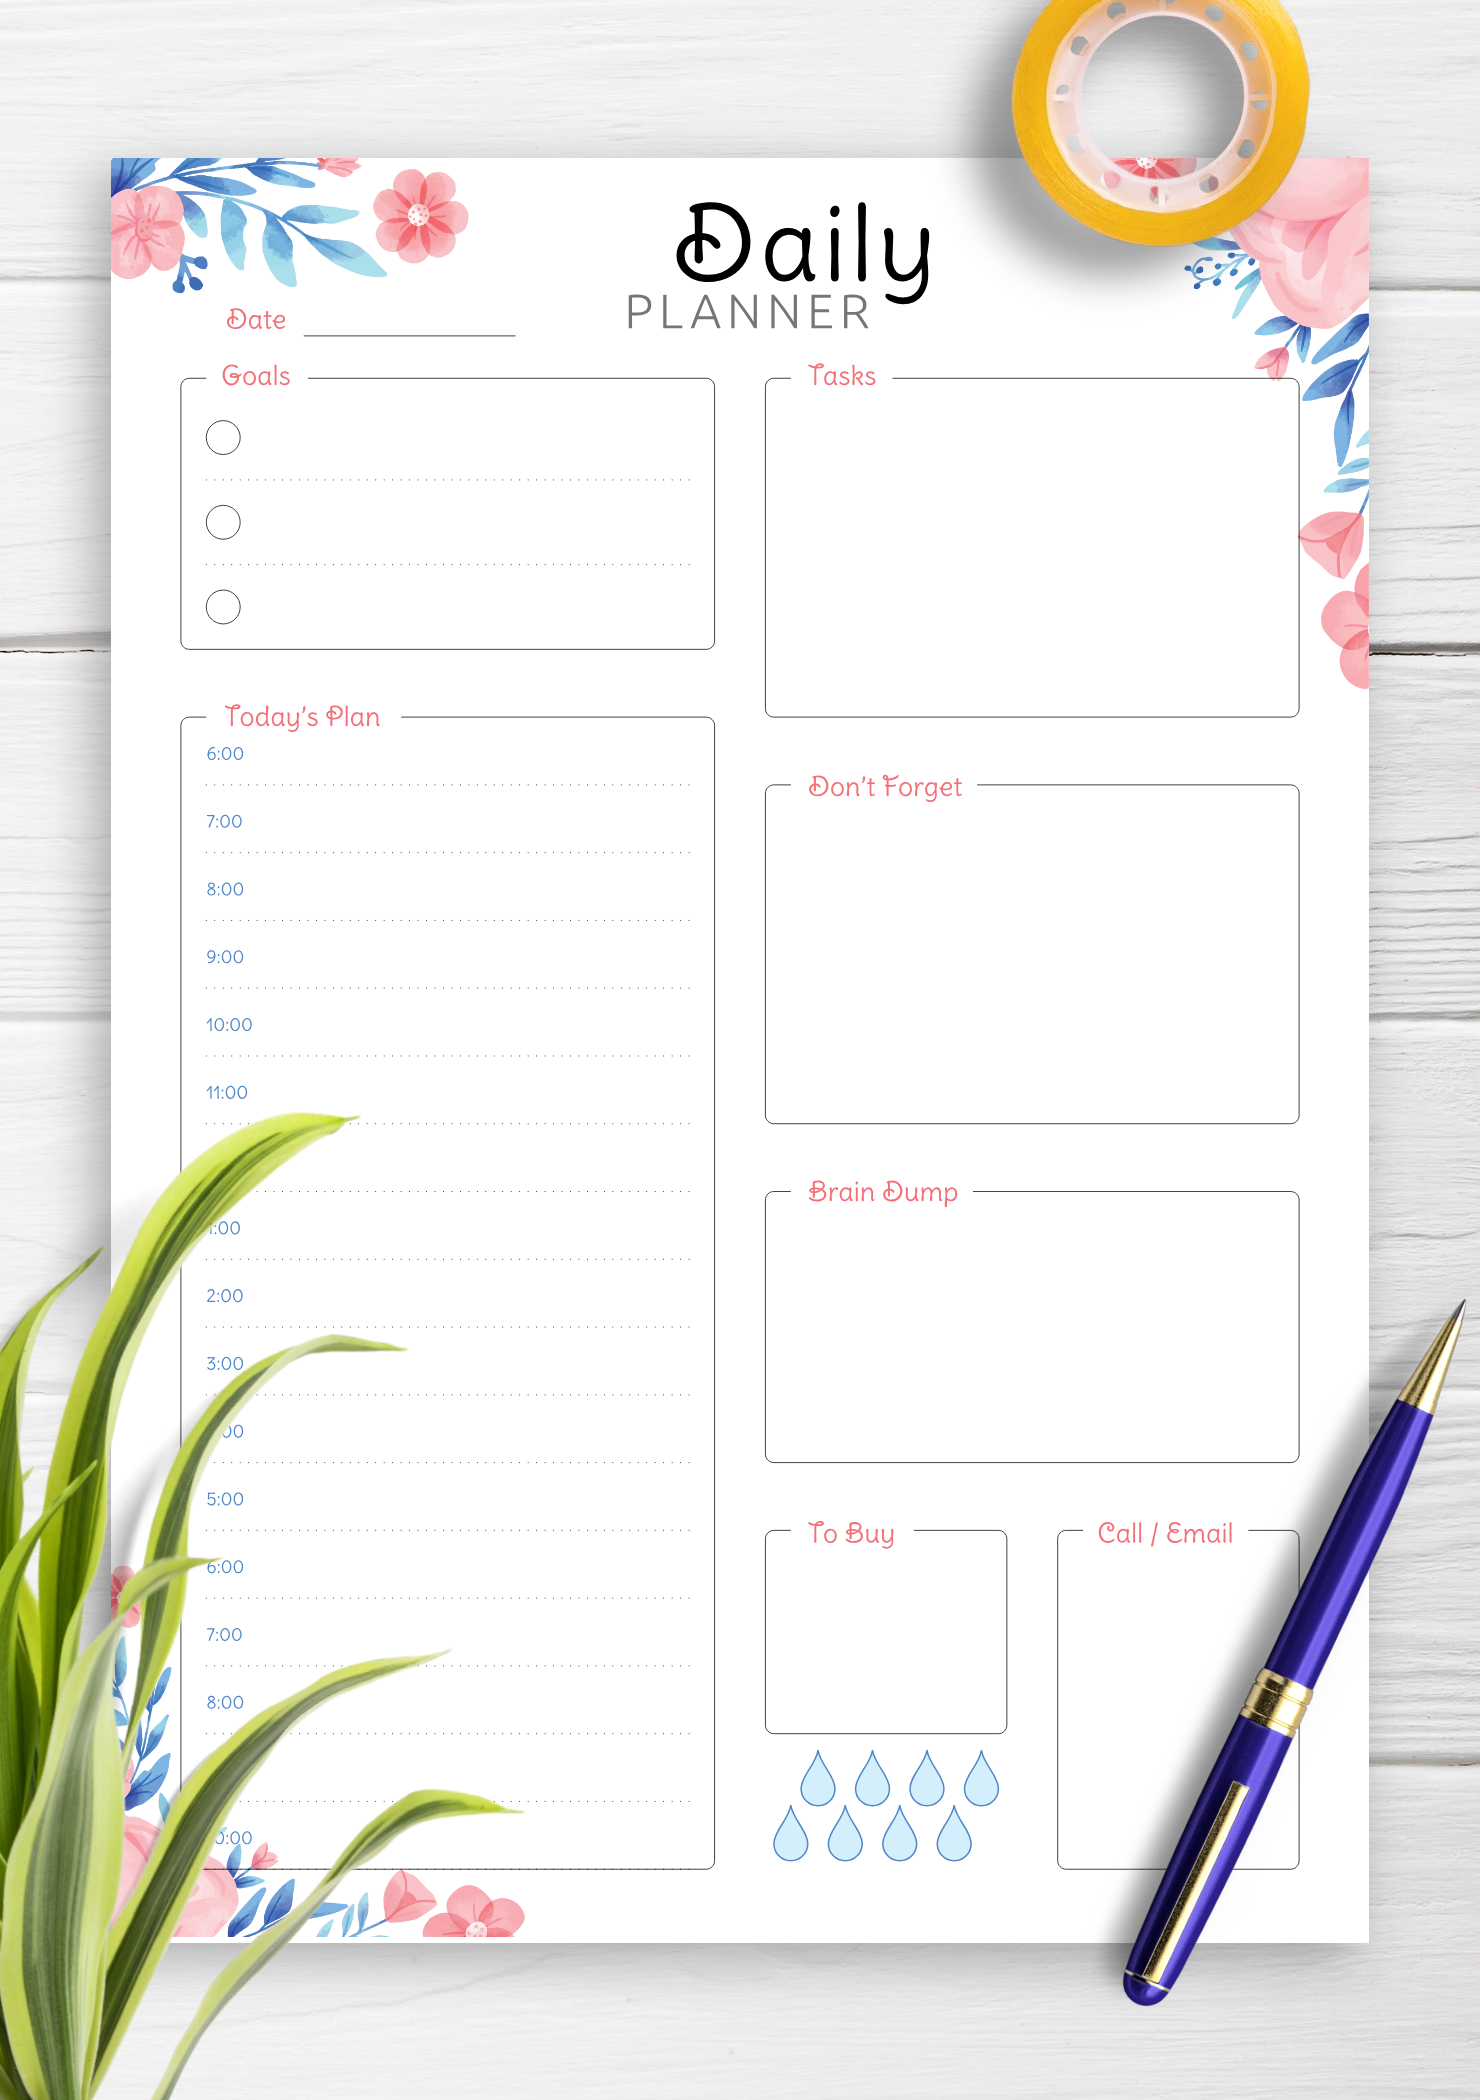 Download Printable Hourly Planner With Daily Tasks & Goals Pdf Printable Daily Hourly Schedule